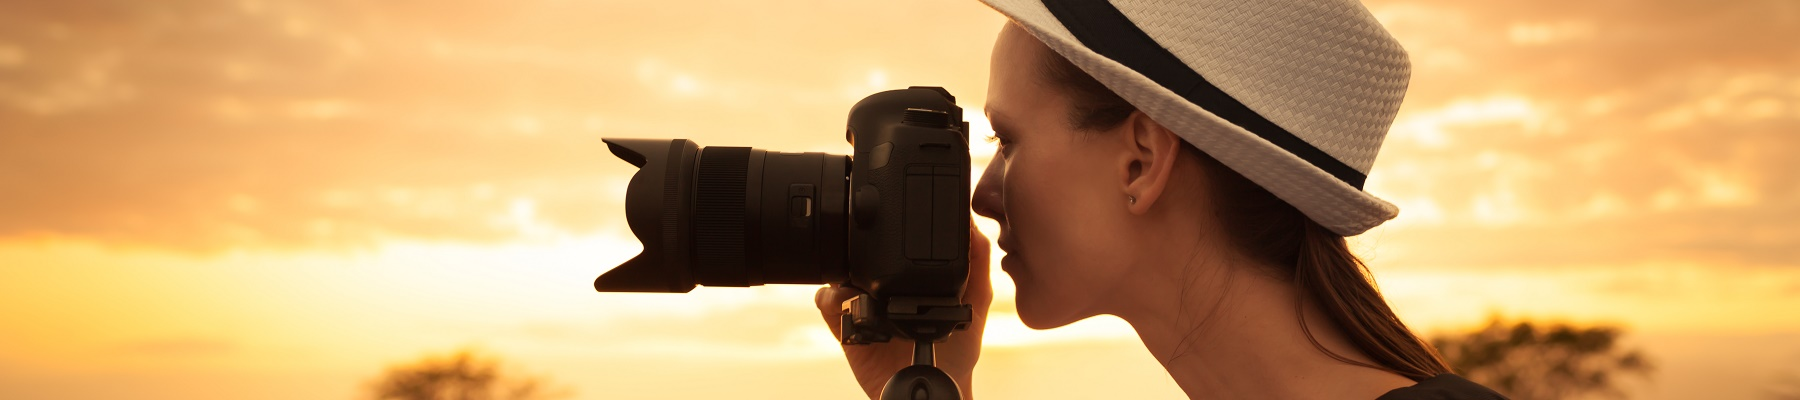 A woman using a camera at sunset